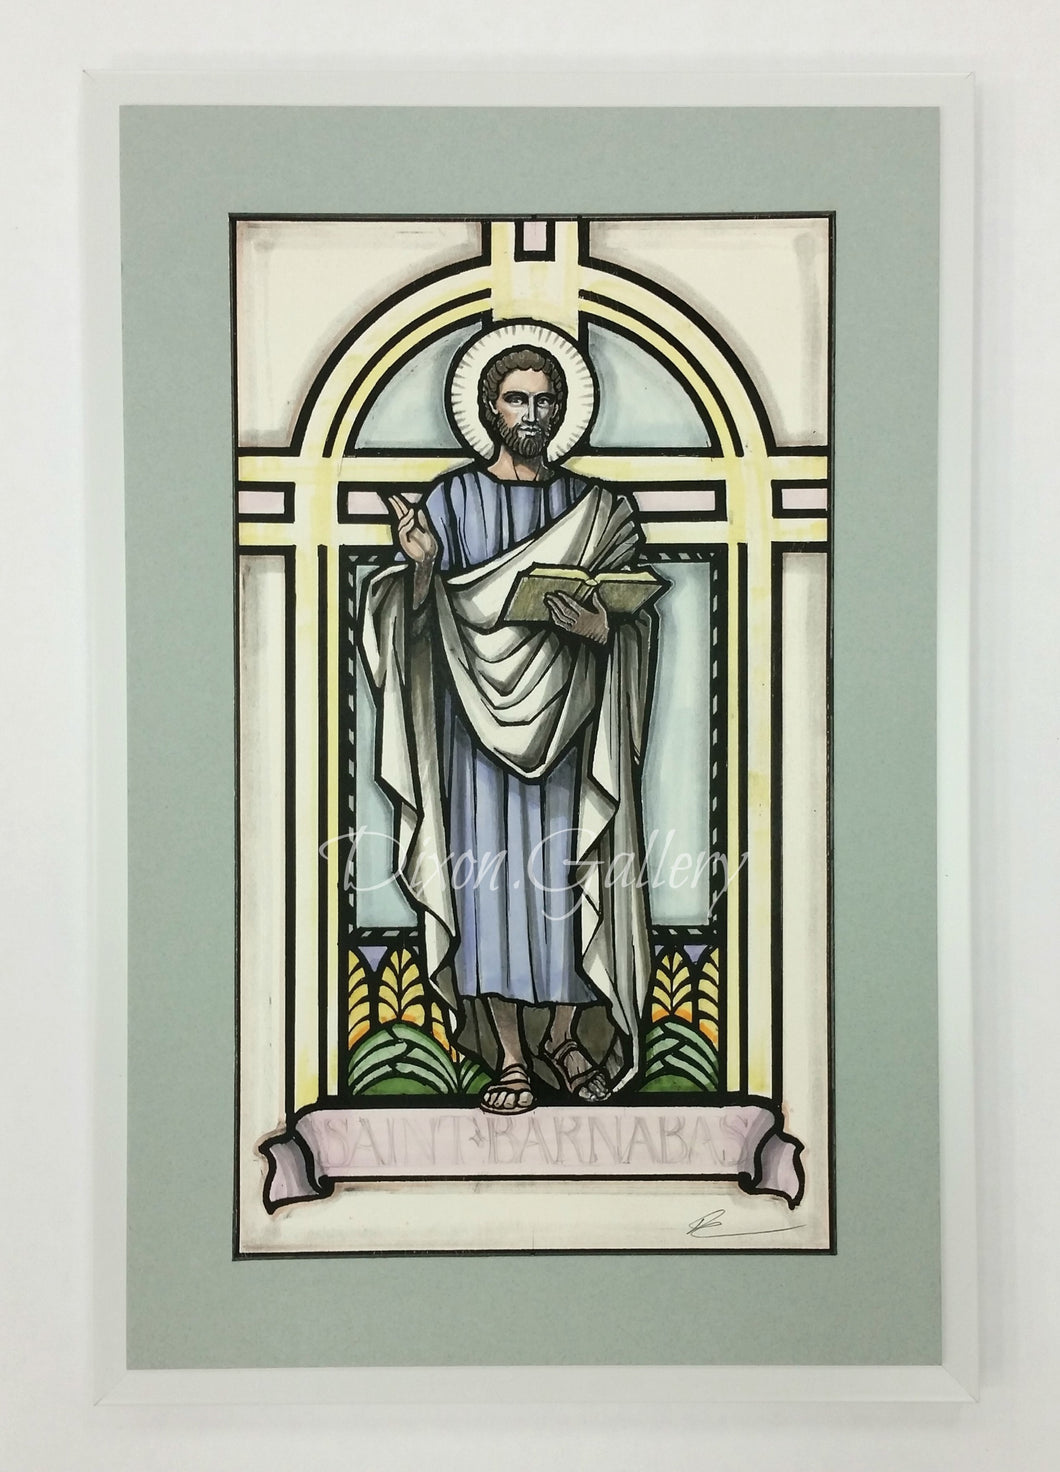 St. Barnabas - artist's proof, framed